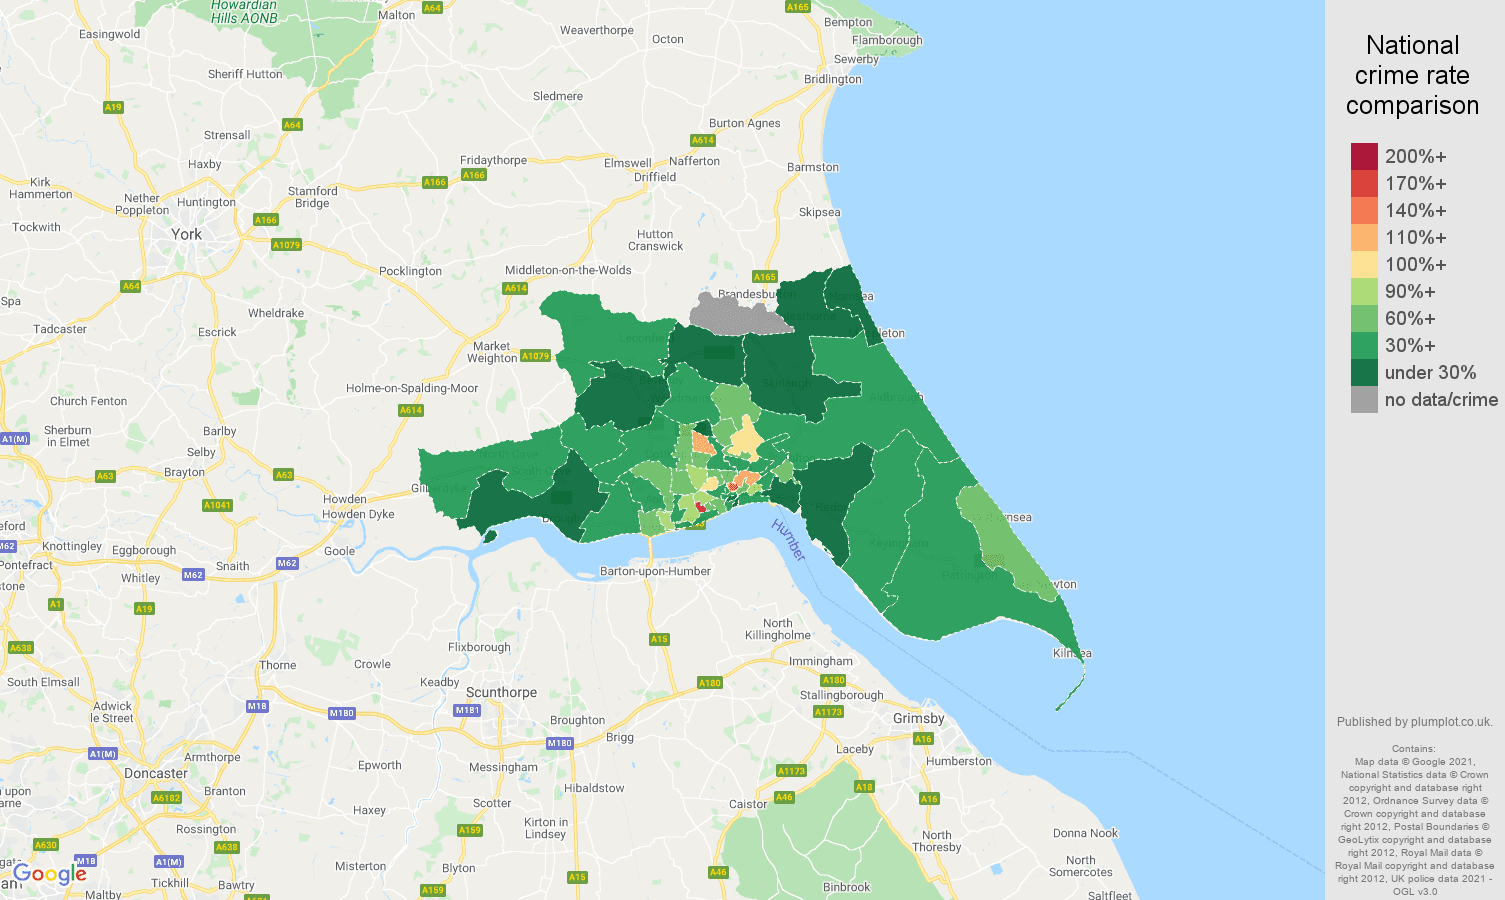 Hull vehicle crime rate comparison map